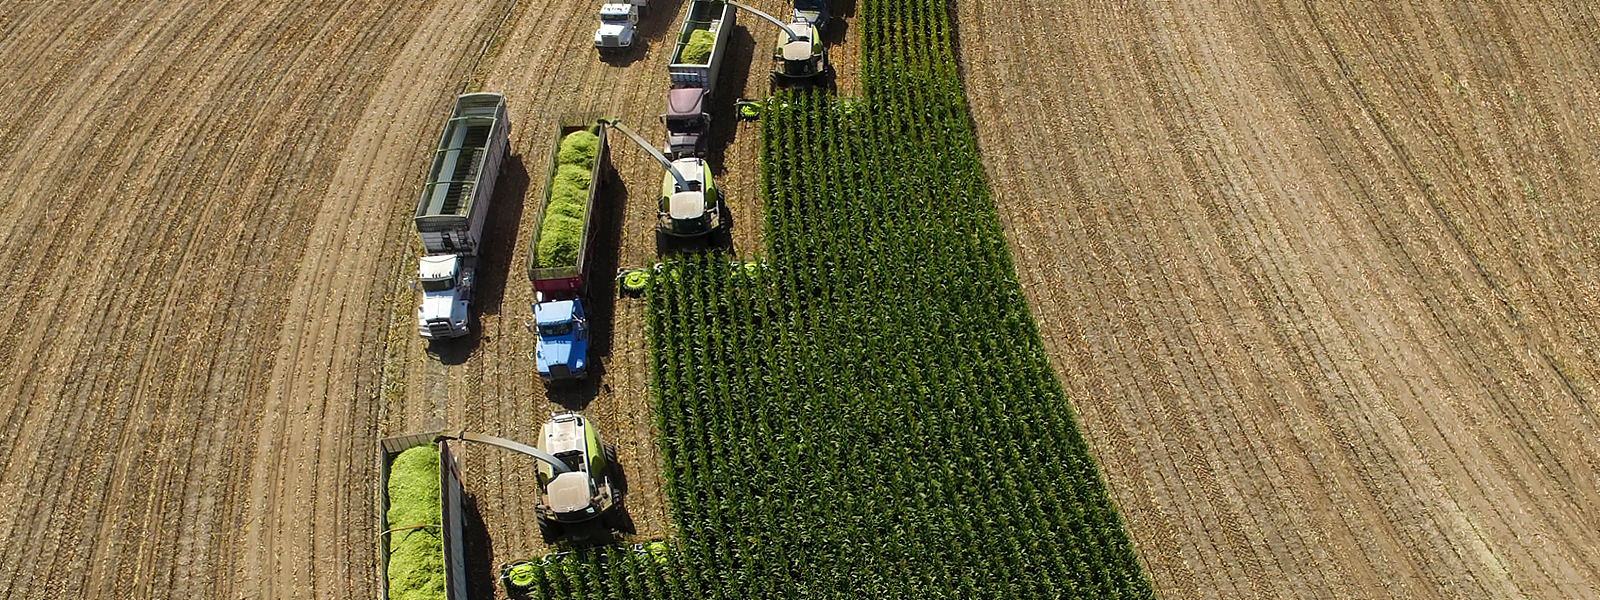 Four JAGUAR forage harvesters in the field